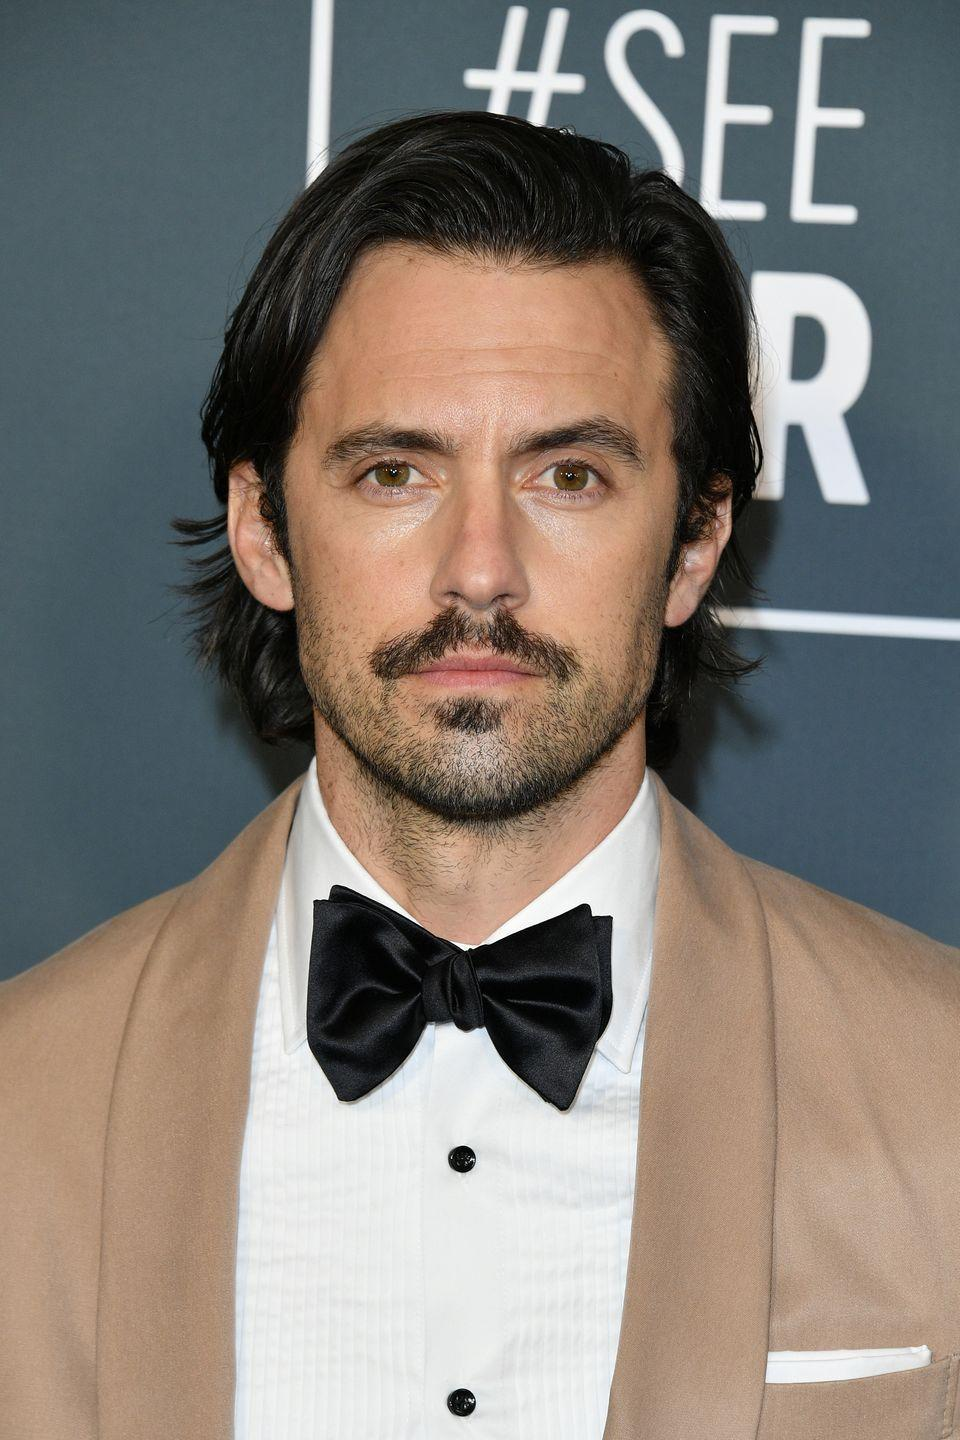 <p>Fast forward to today, and Ventimiglia is still on our screens in hit shows like <em>This Is Us</em> to movies such as <em>Second Act</em>, <em>Creed II</em>, and <em>The Art of Racing In the Rain</em>.</p>